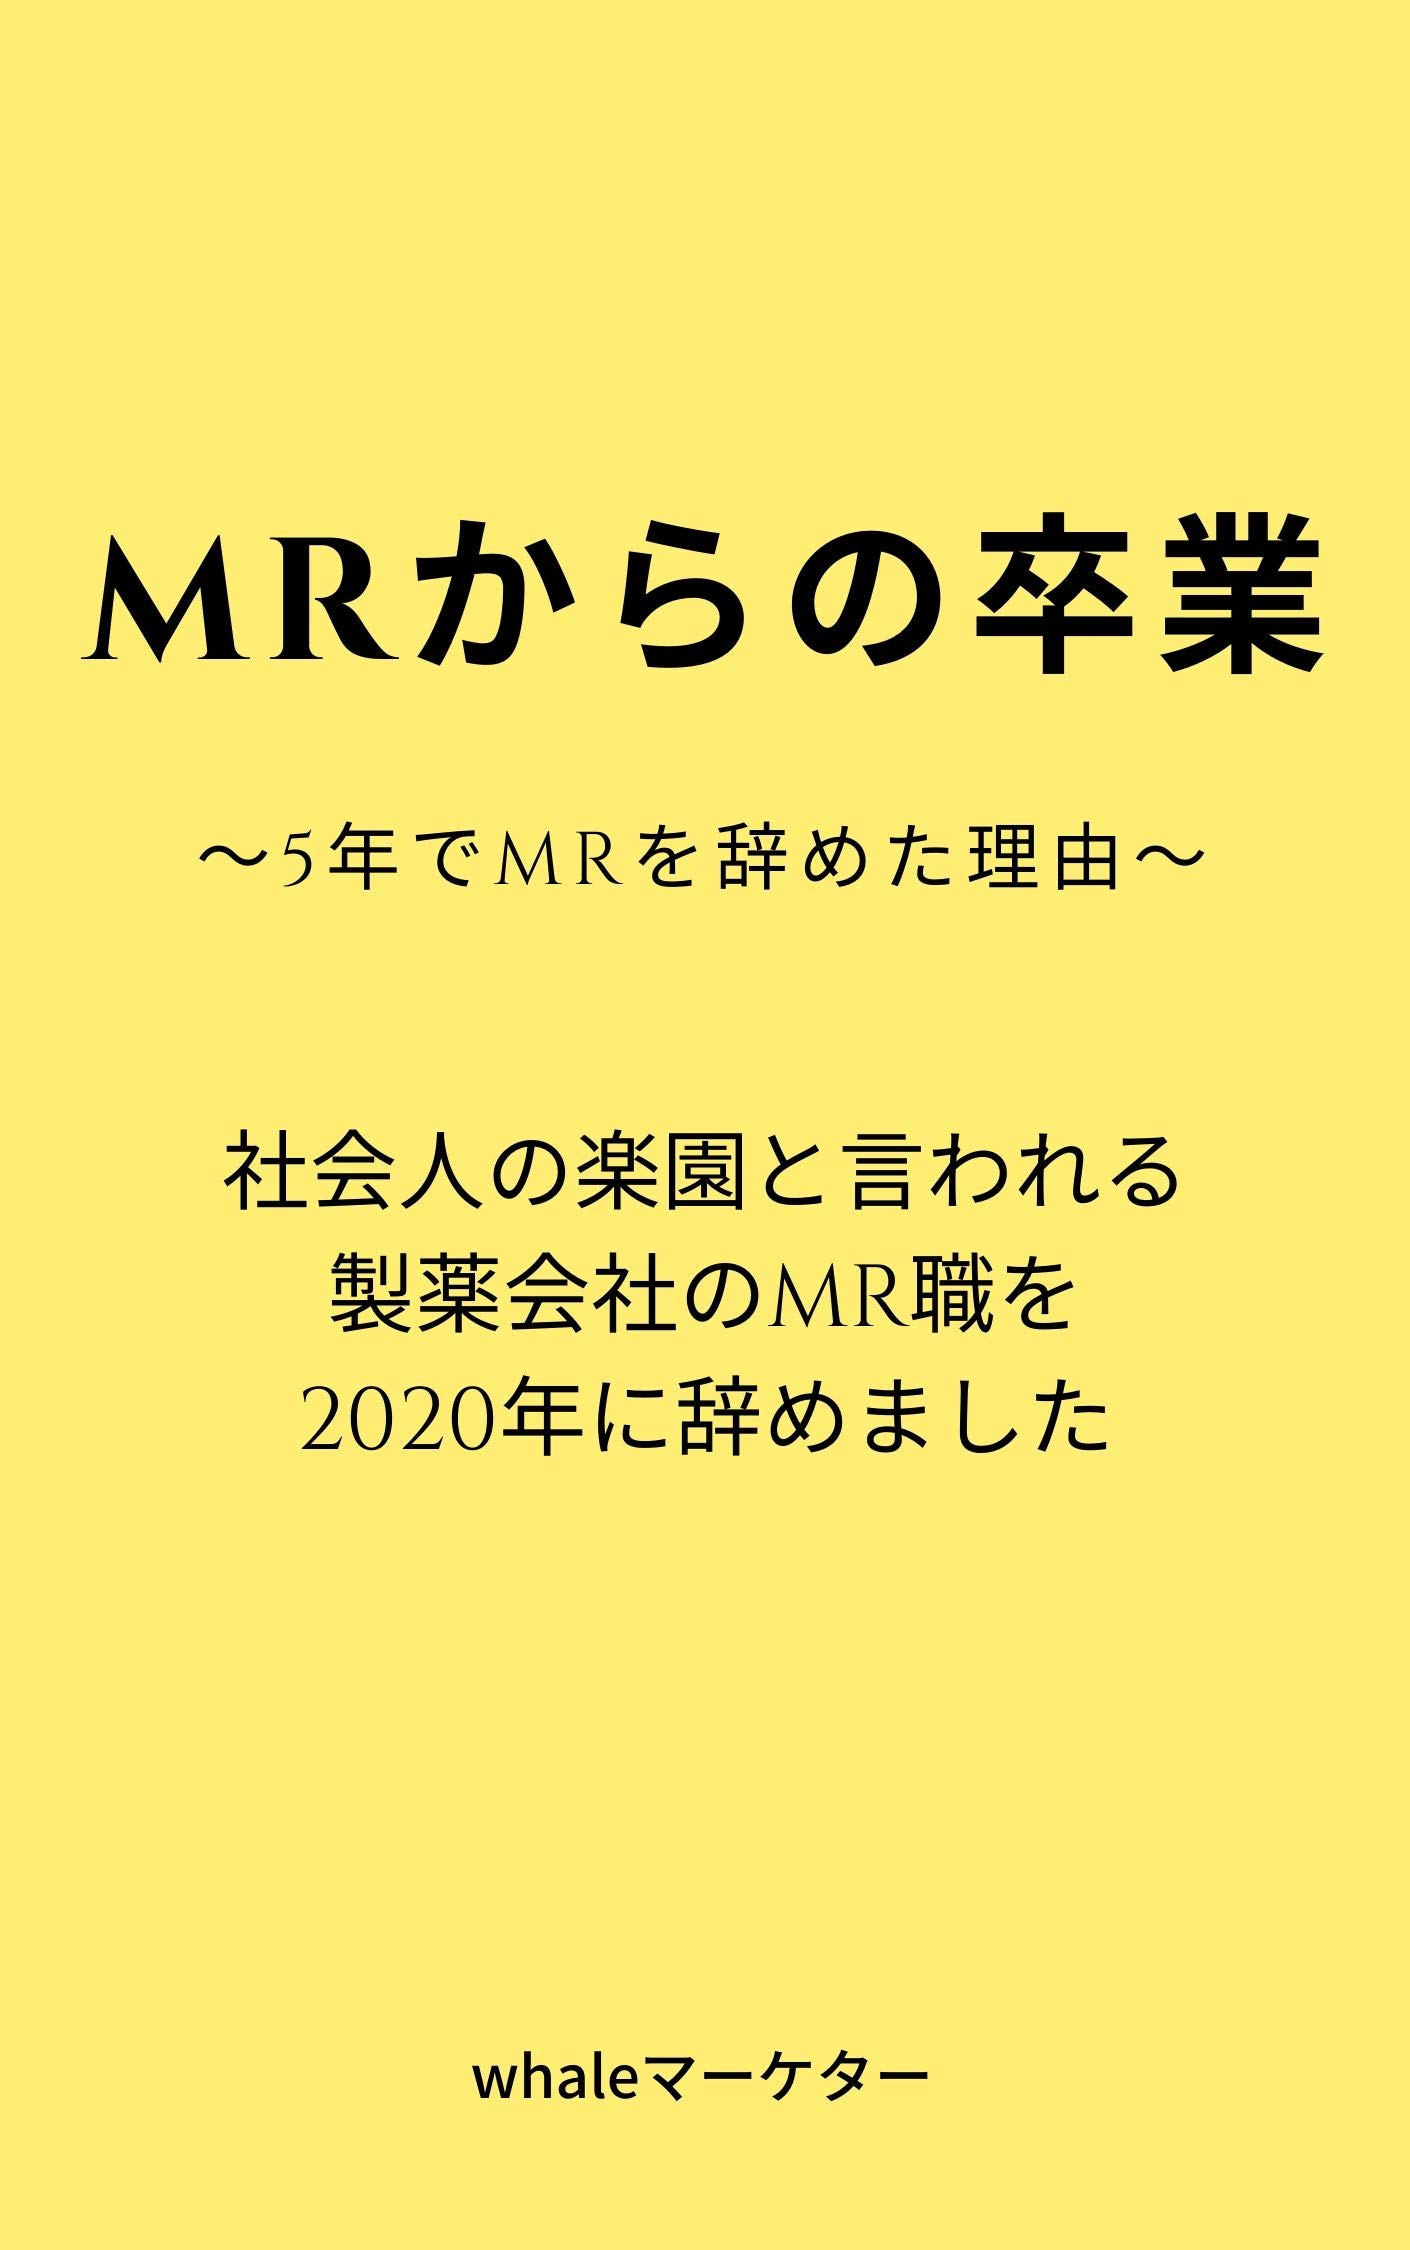 Graduating from MR - Why I quit MR after 5 years: I quit my MR job at a pharmaceutical company a working mans paradise in 2020 (business book)